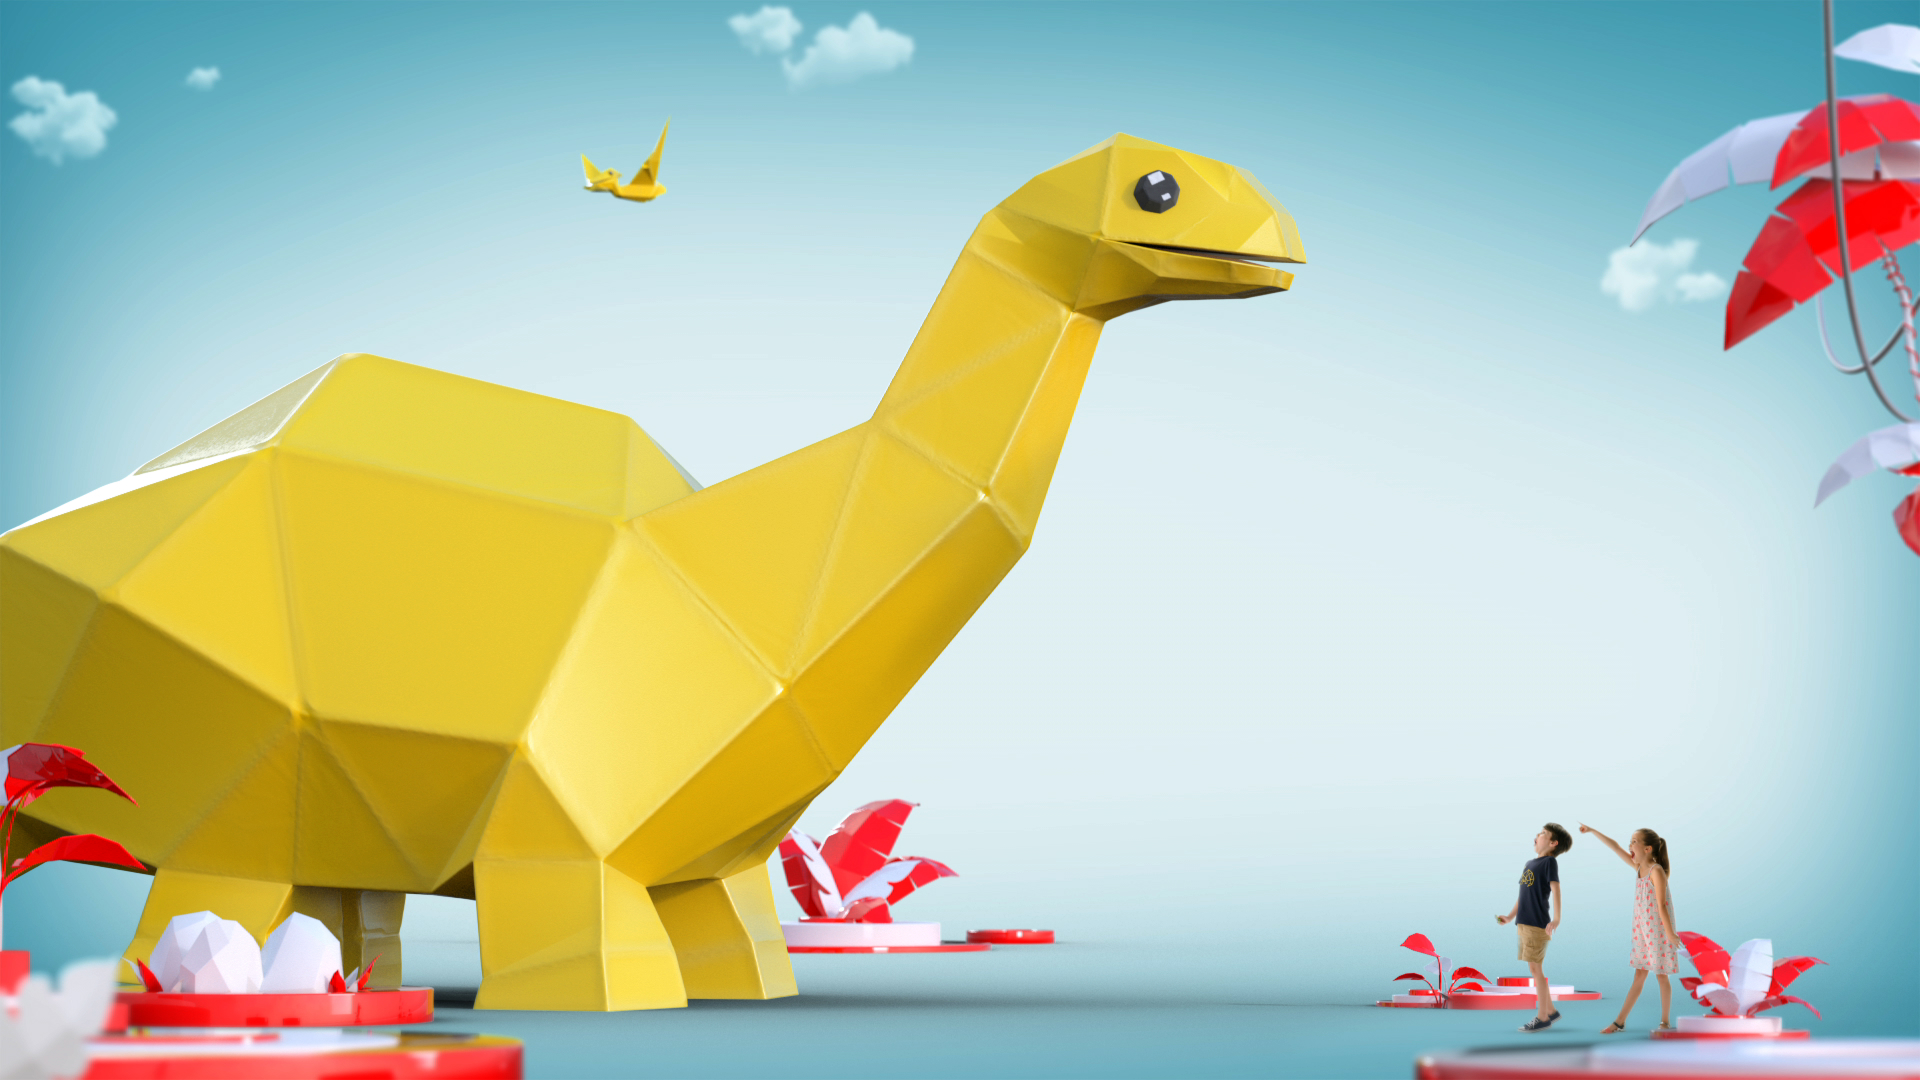 Paper dino as he appears in the commercial.